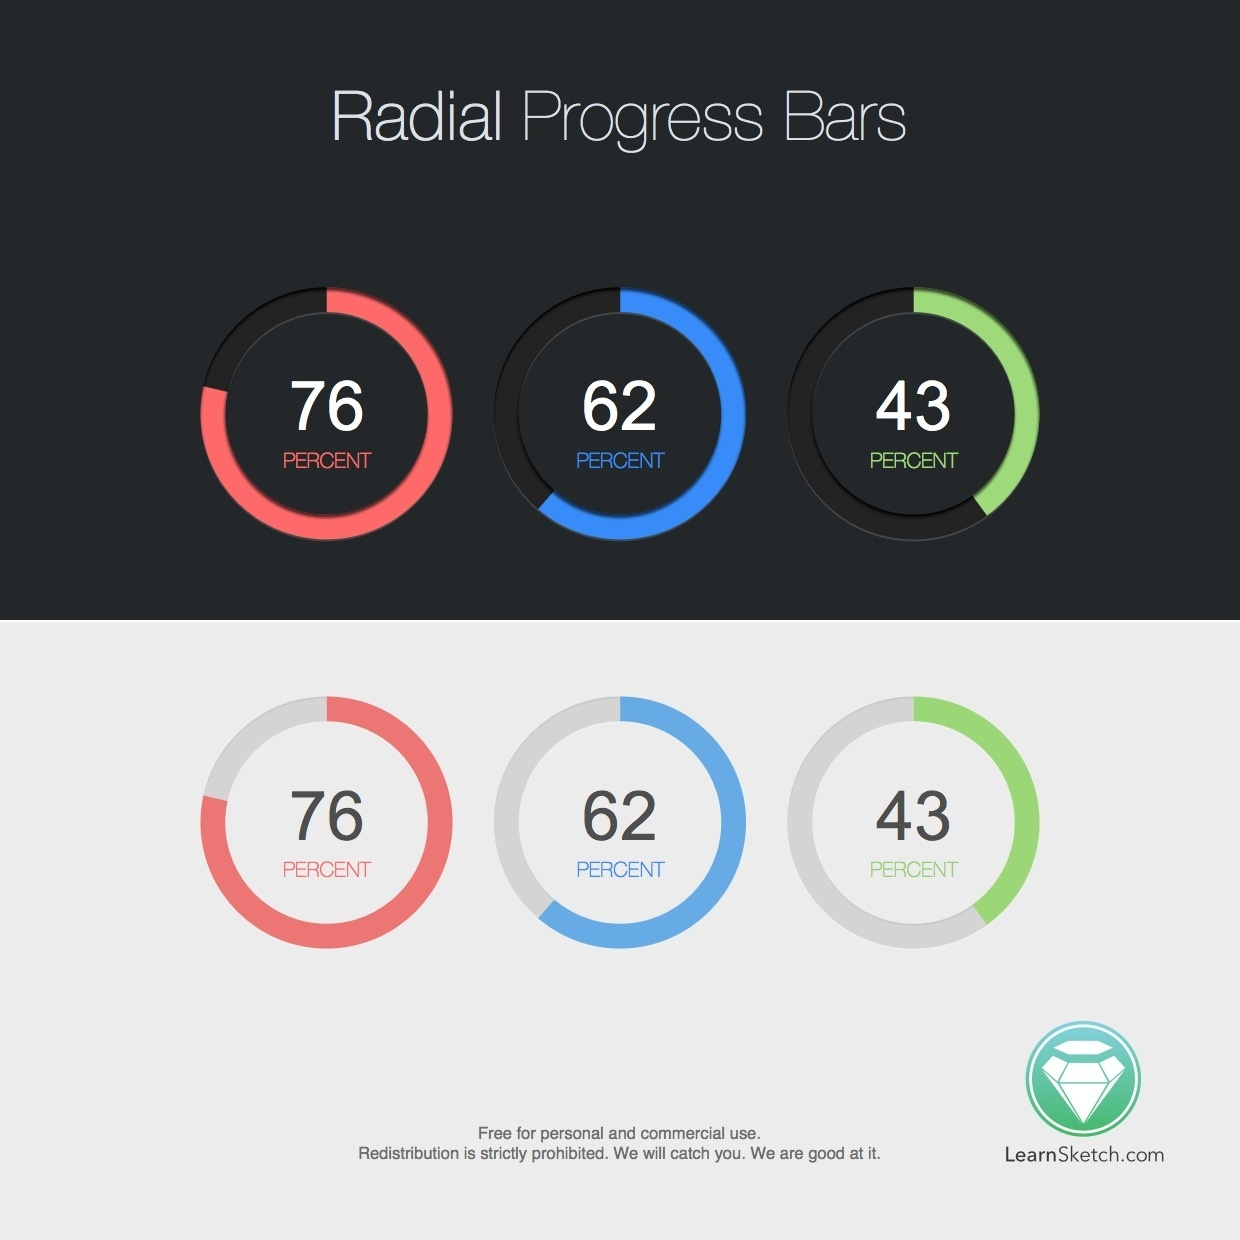 Radial Progress Bars